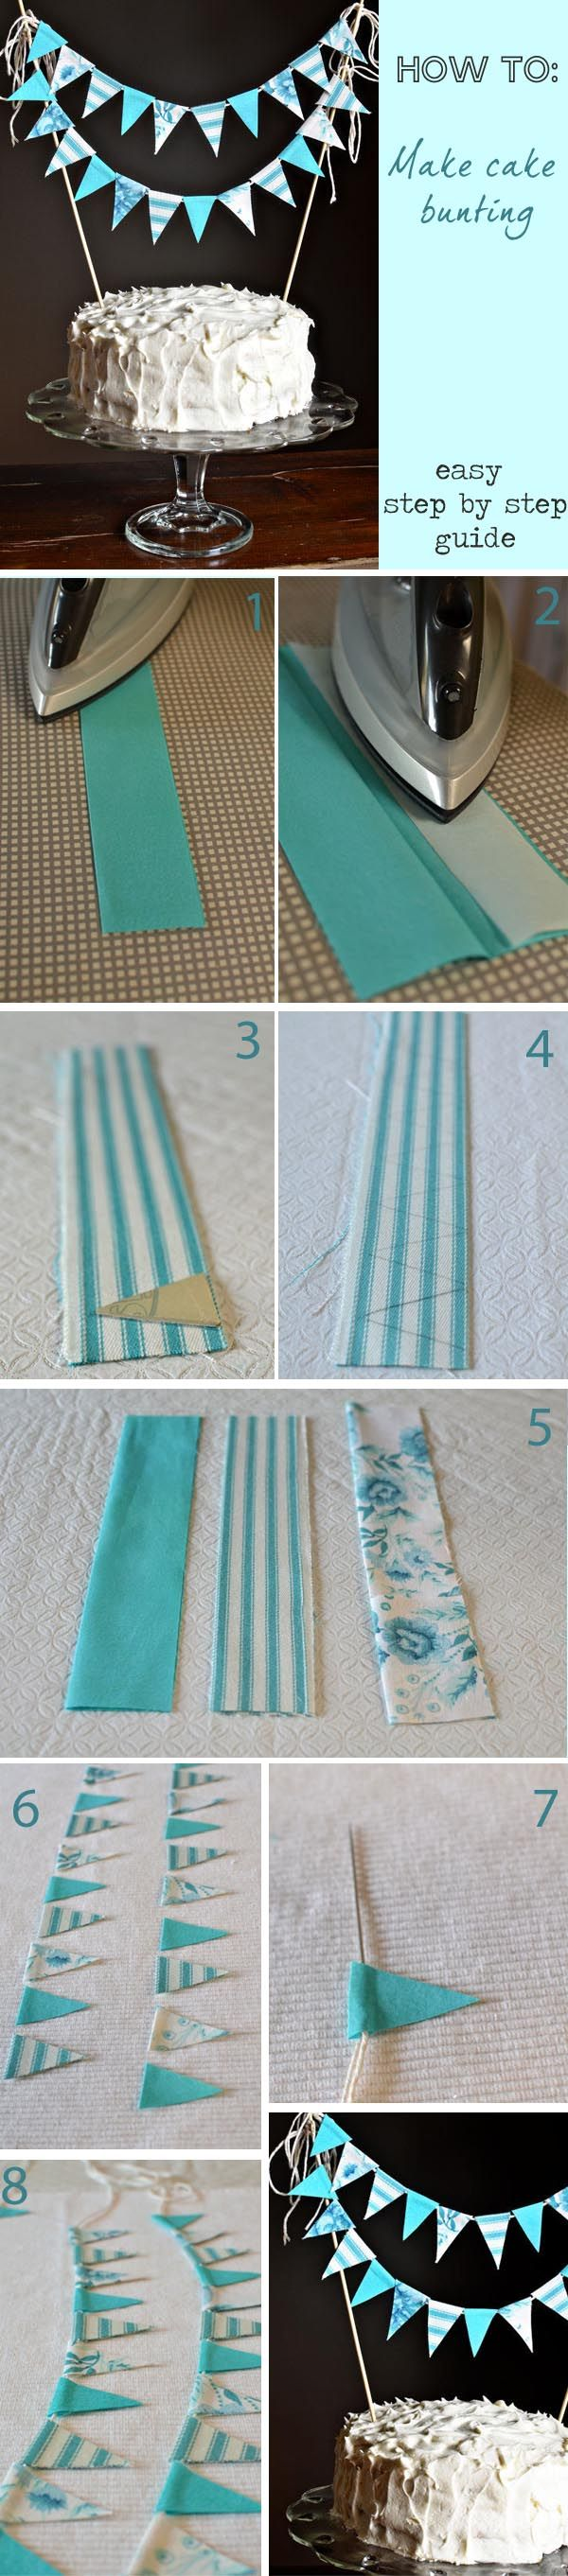 How To Make Cake Bunting Step By Step Guide